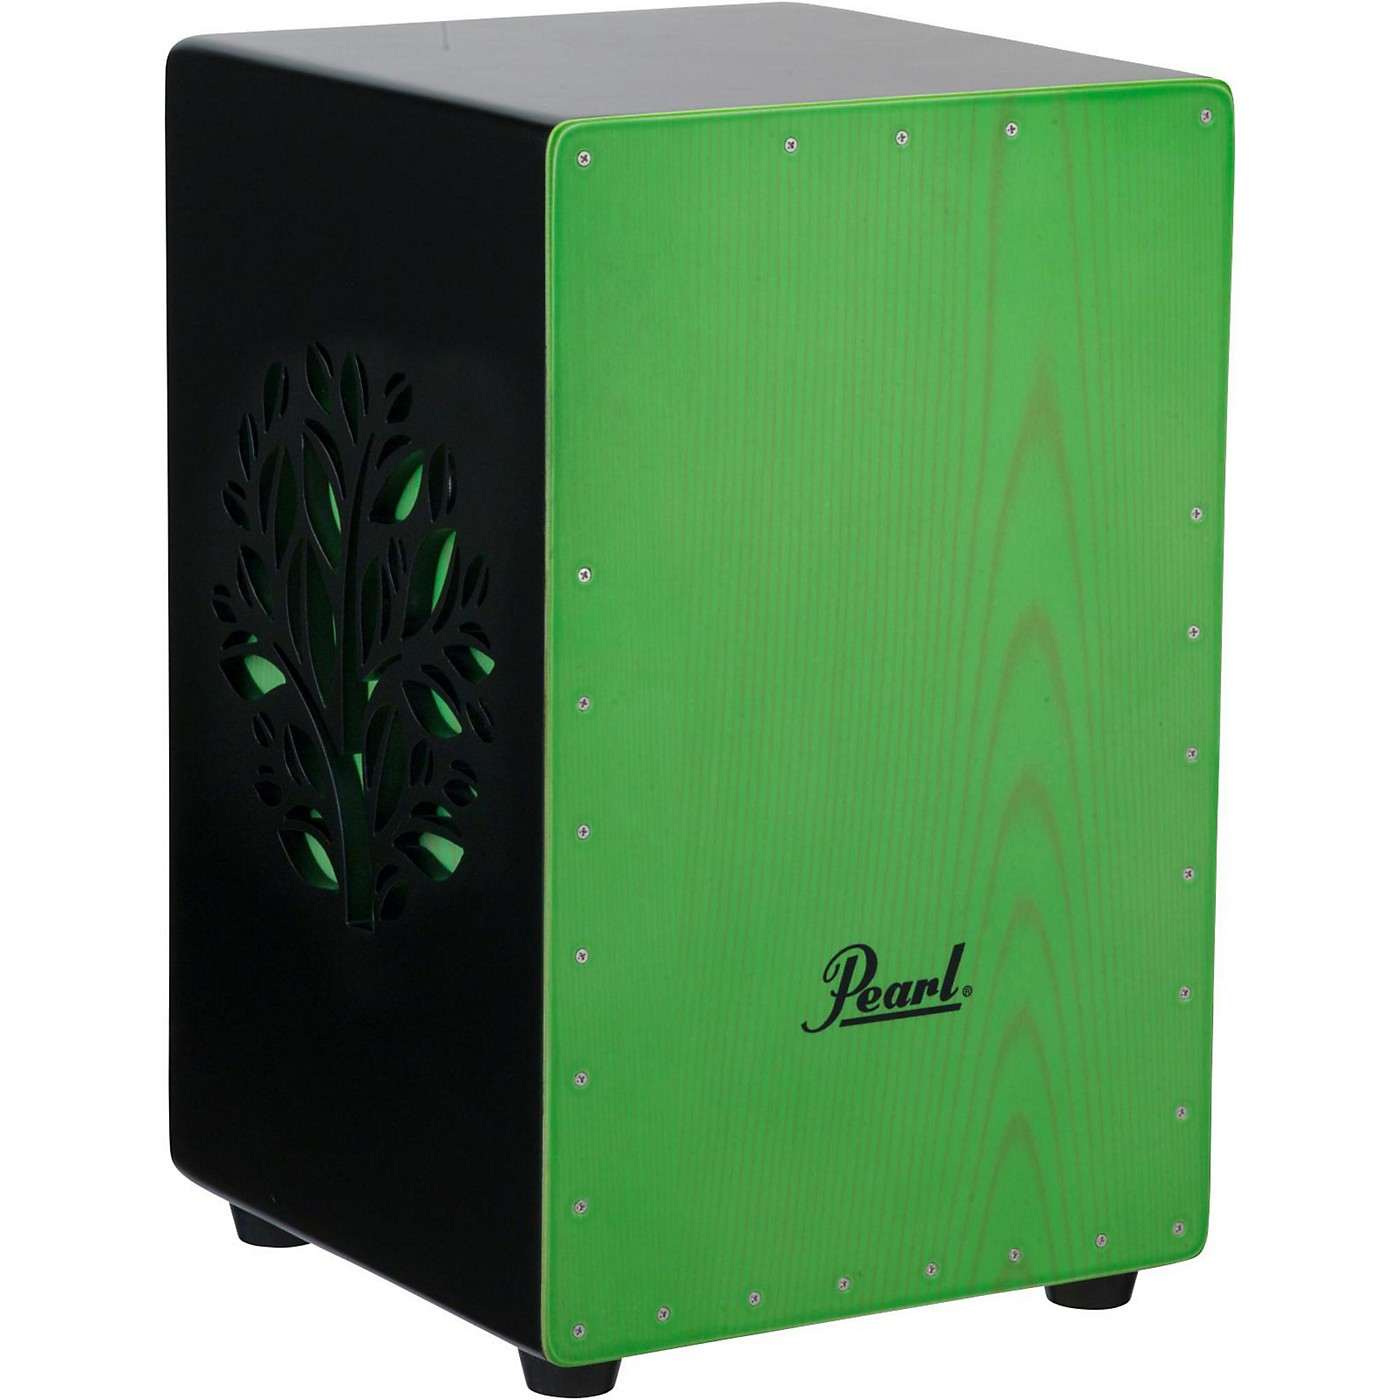 Pearl 3D Cajon with green faceplate and 3D tree thumbnail